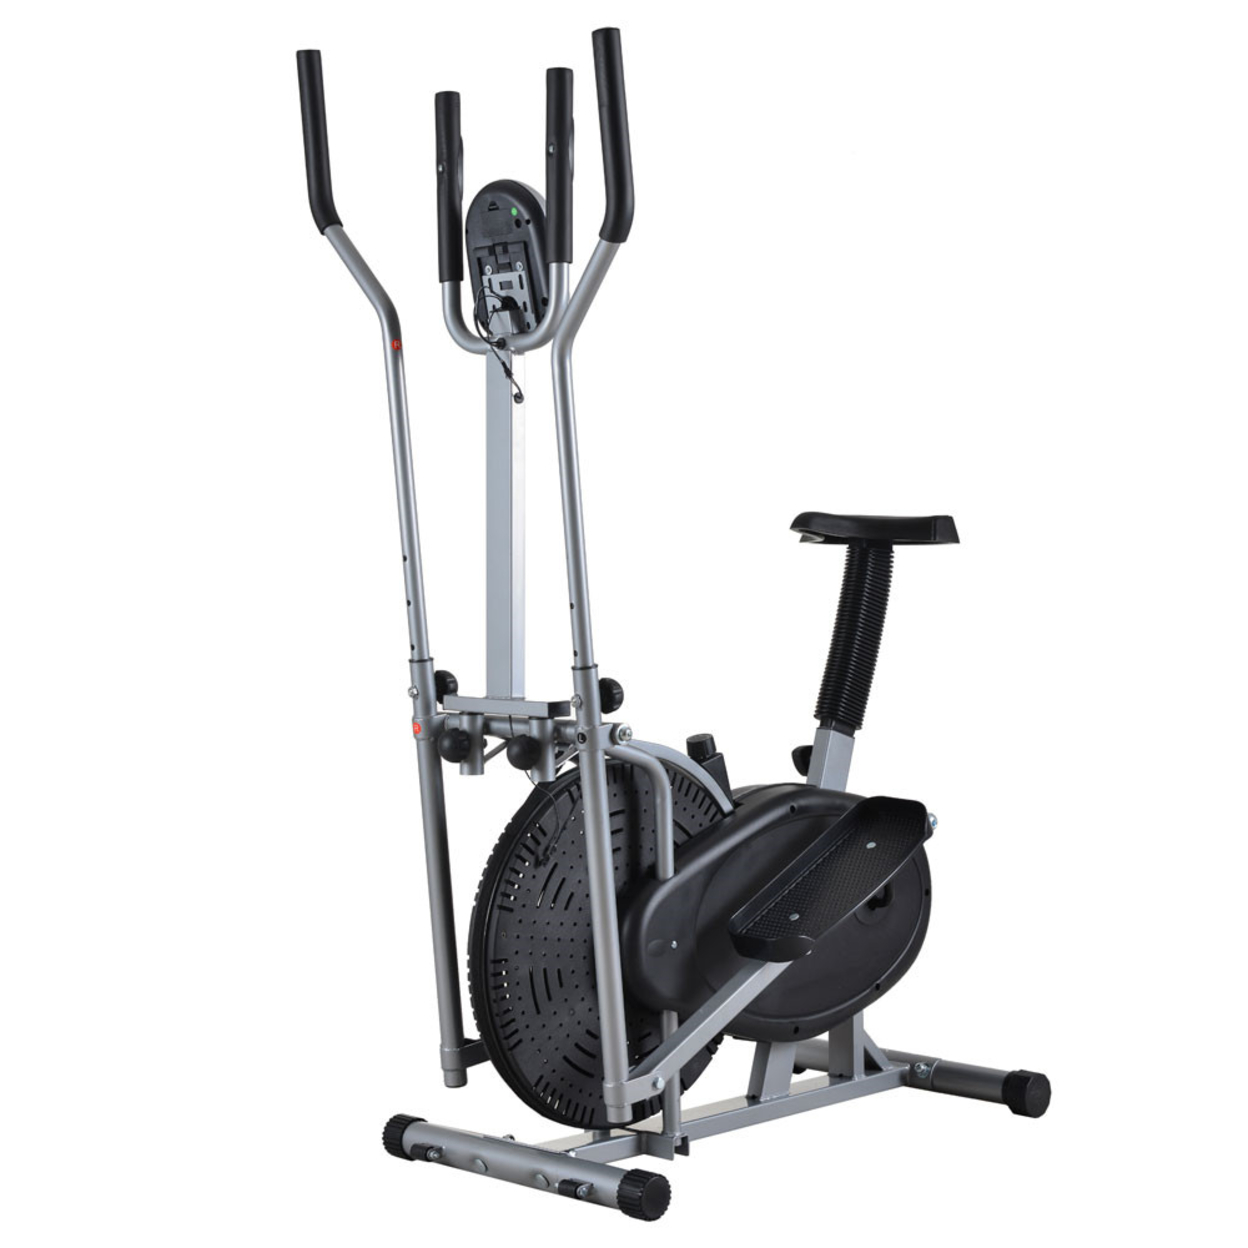 Fitness Supplies Steppers Magnetic Elliptical Machine Walker Exercise Bike Home 599fdb73caccdd3f8b02a21d